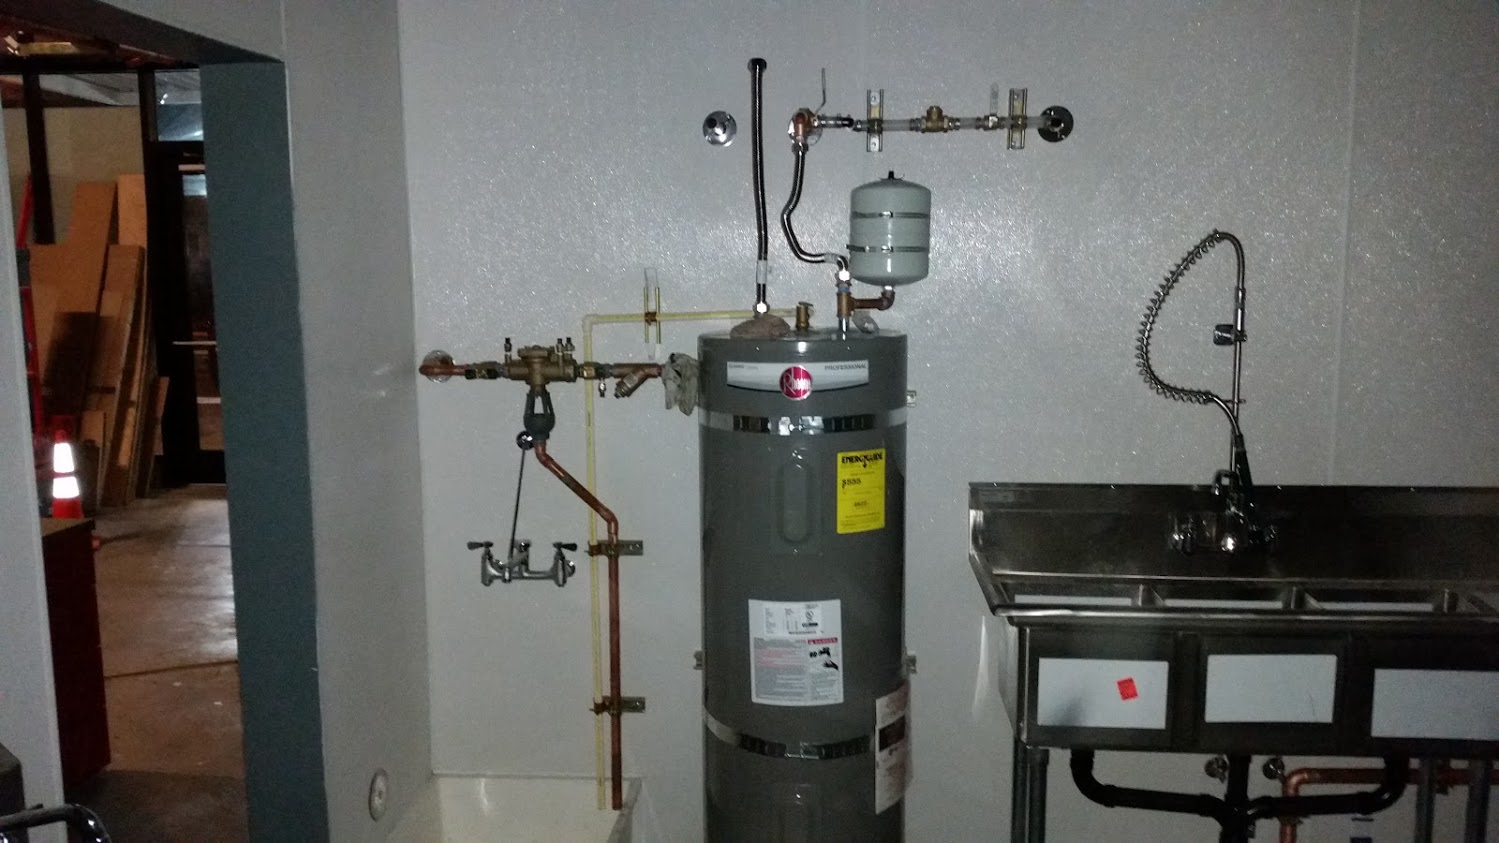 Commercial water heater and reduced pressure backflow device Air Gap Drain into mop sink receptacle